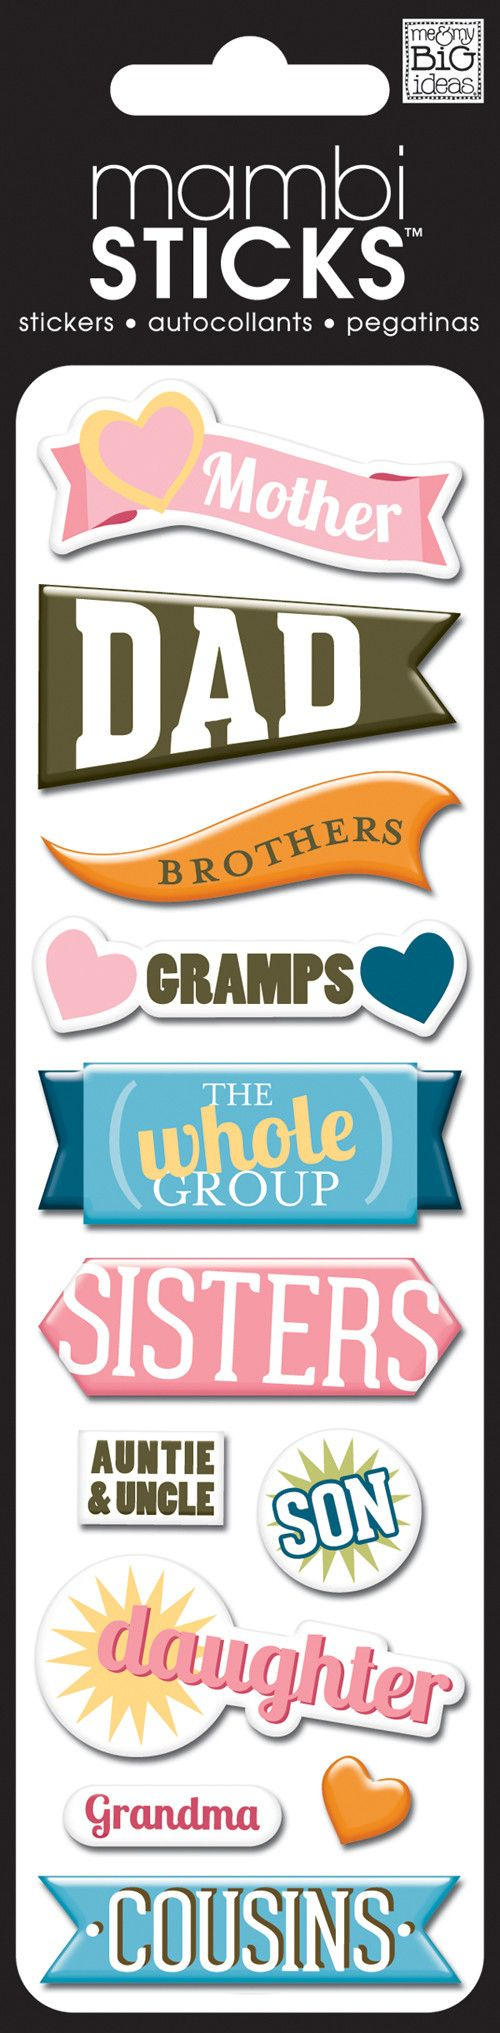 Scrapbook ideas grandma - Puffy Stickers Add Dimension And Fun To Any Project So Easy To Use Just